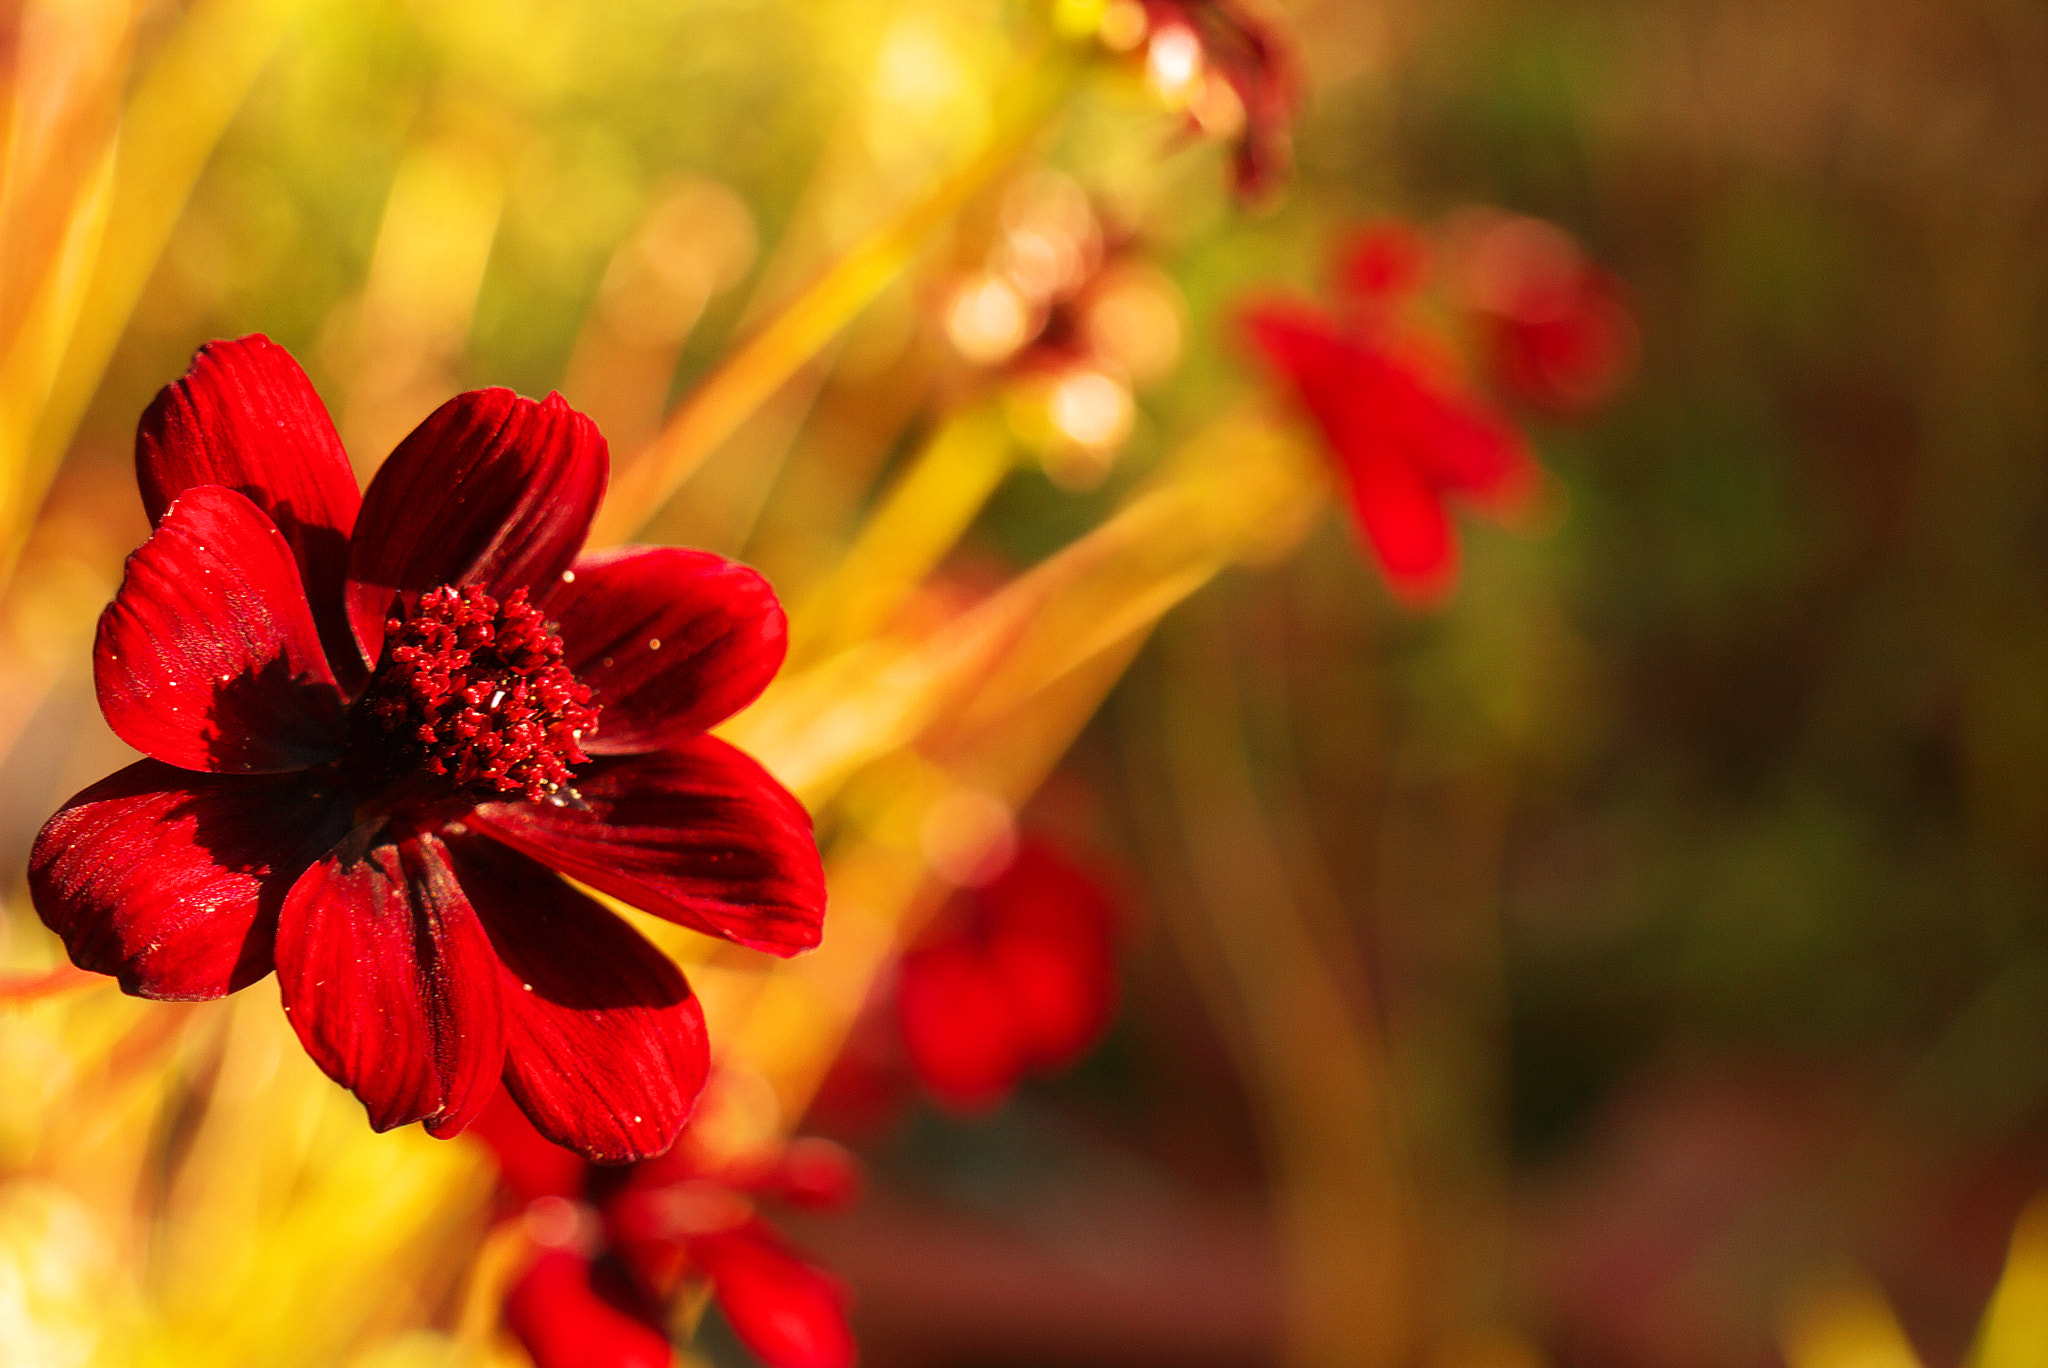 Photograph FLOWERPOWER 1 by Roland Haßler on 500px